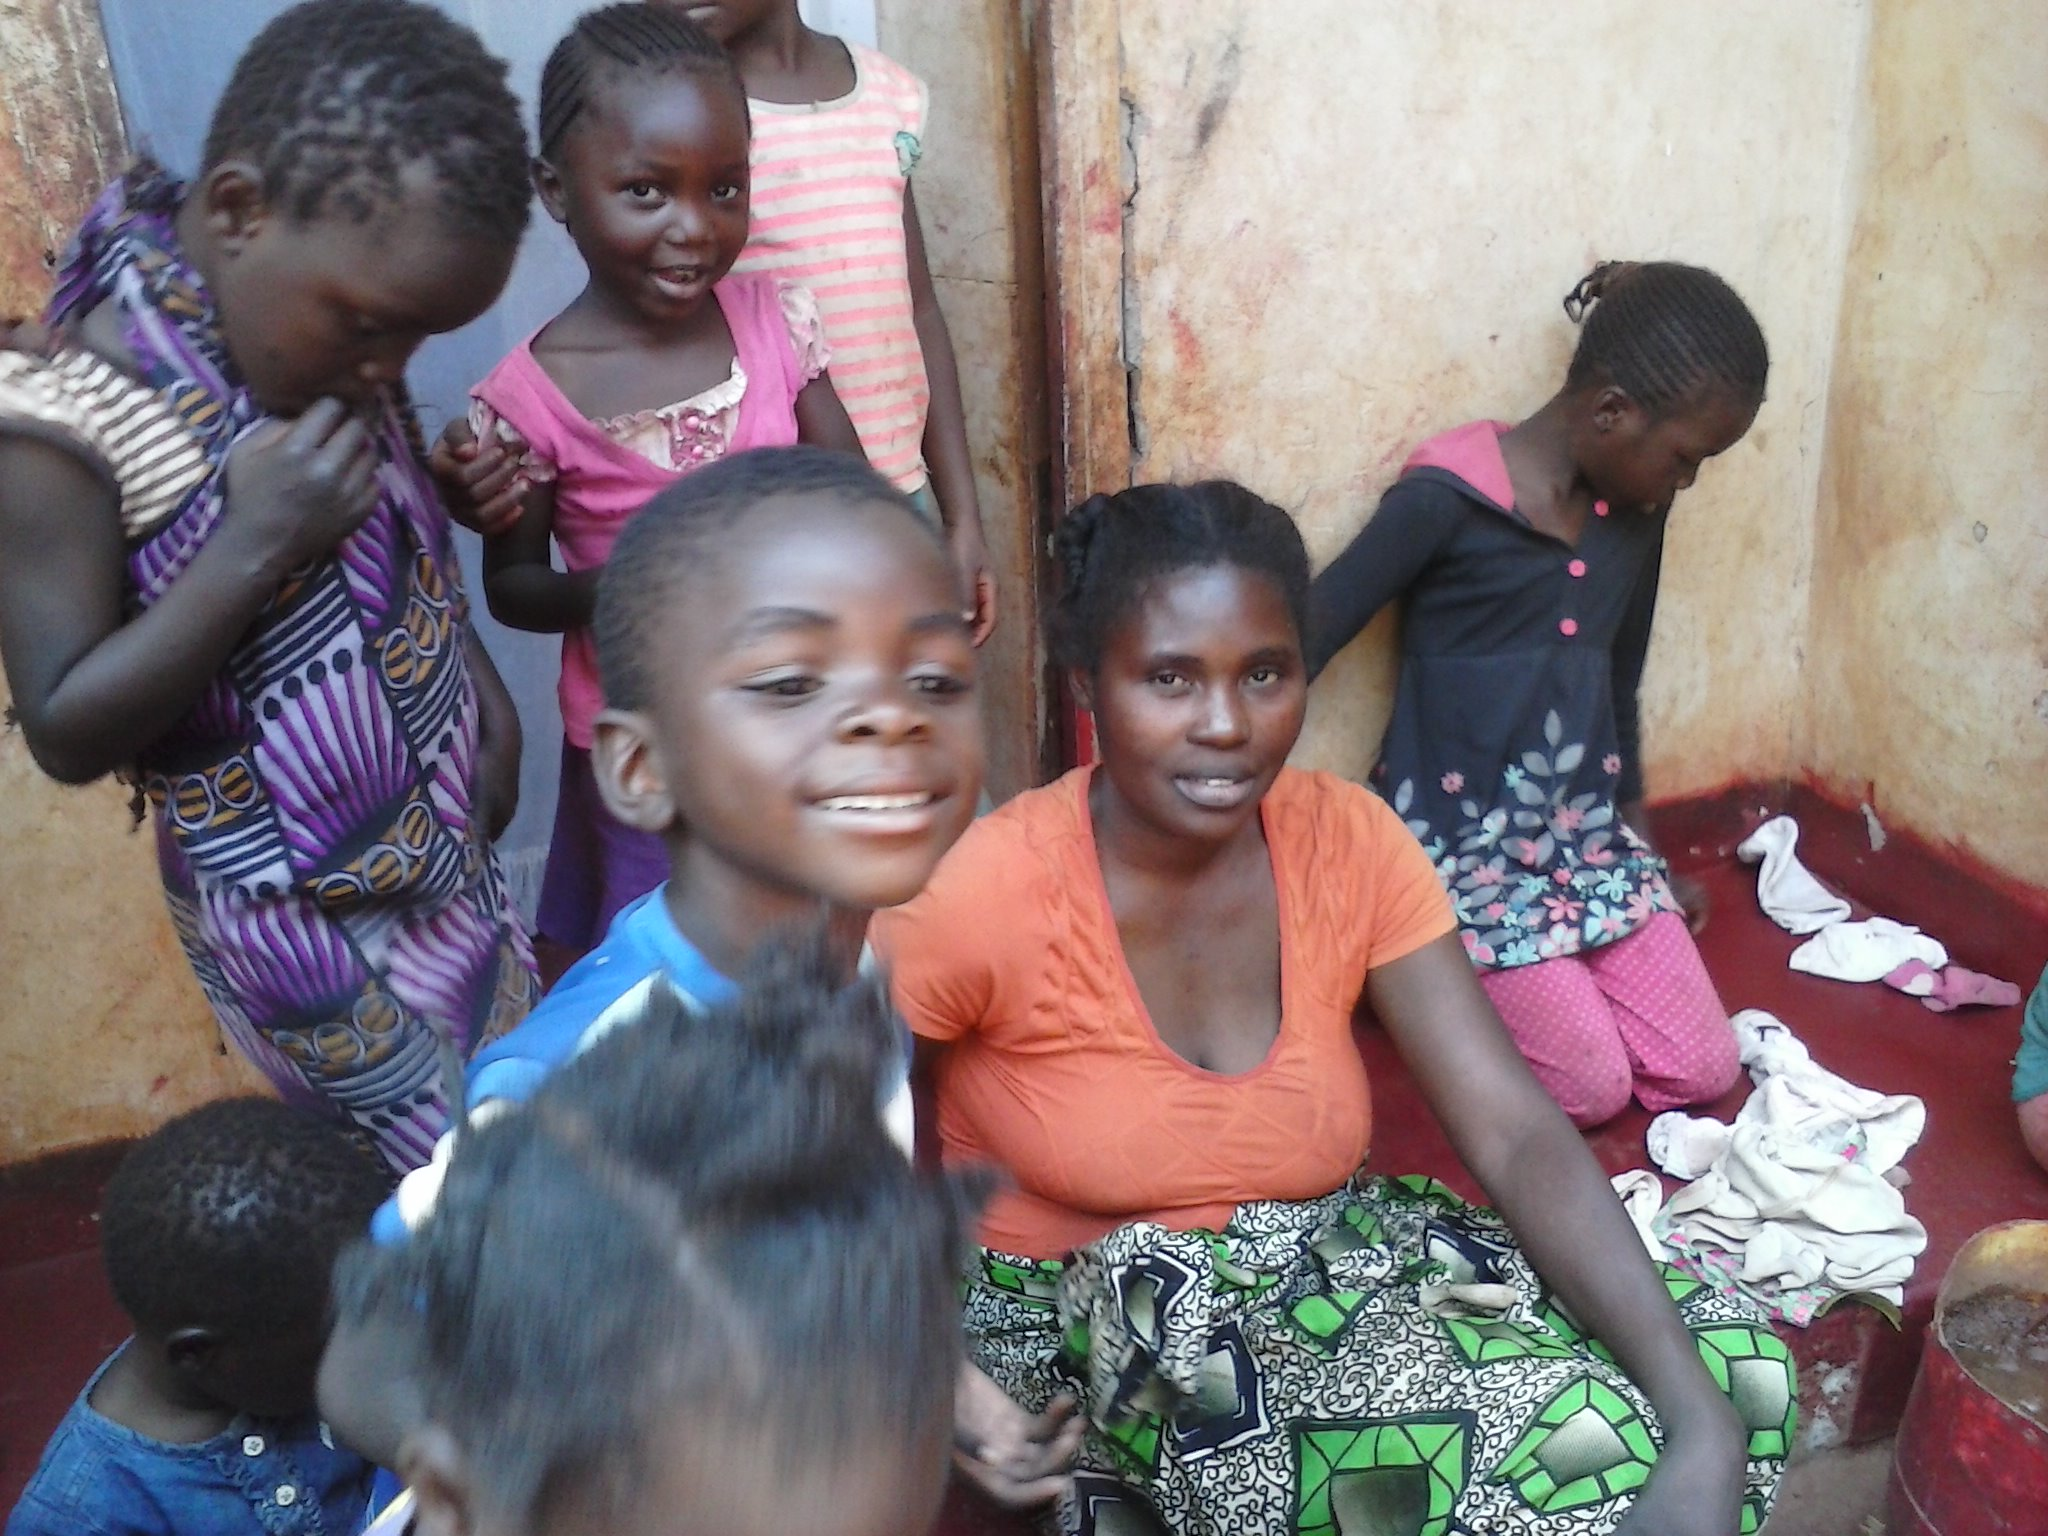 Mulenga visits a mother and her children at their home in Chainda compound during his August 2014 visit to Zambia